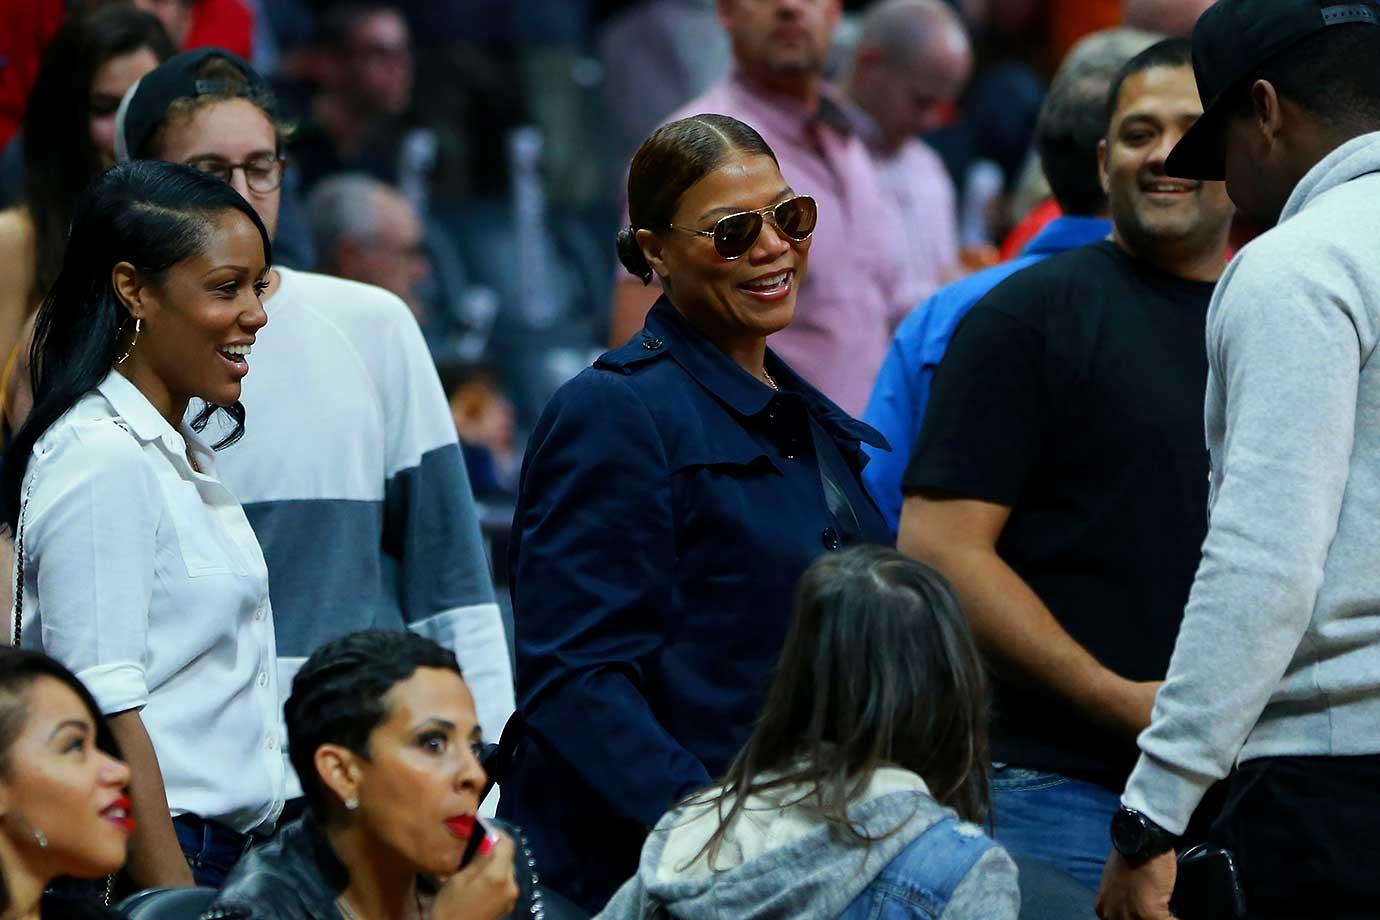 Actress/rapper Queen Latifah attends the game between the Cleveland Cavaliers and Los Angeles Clippers.